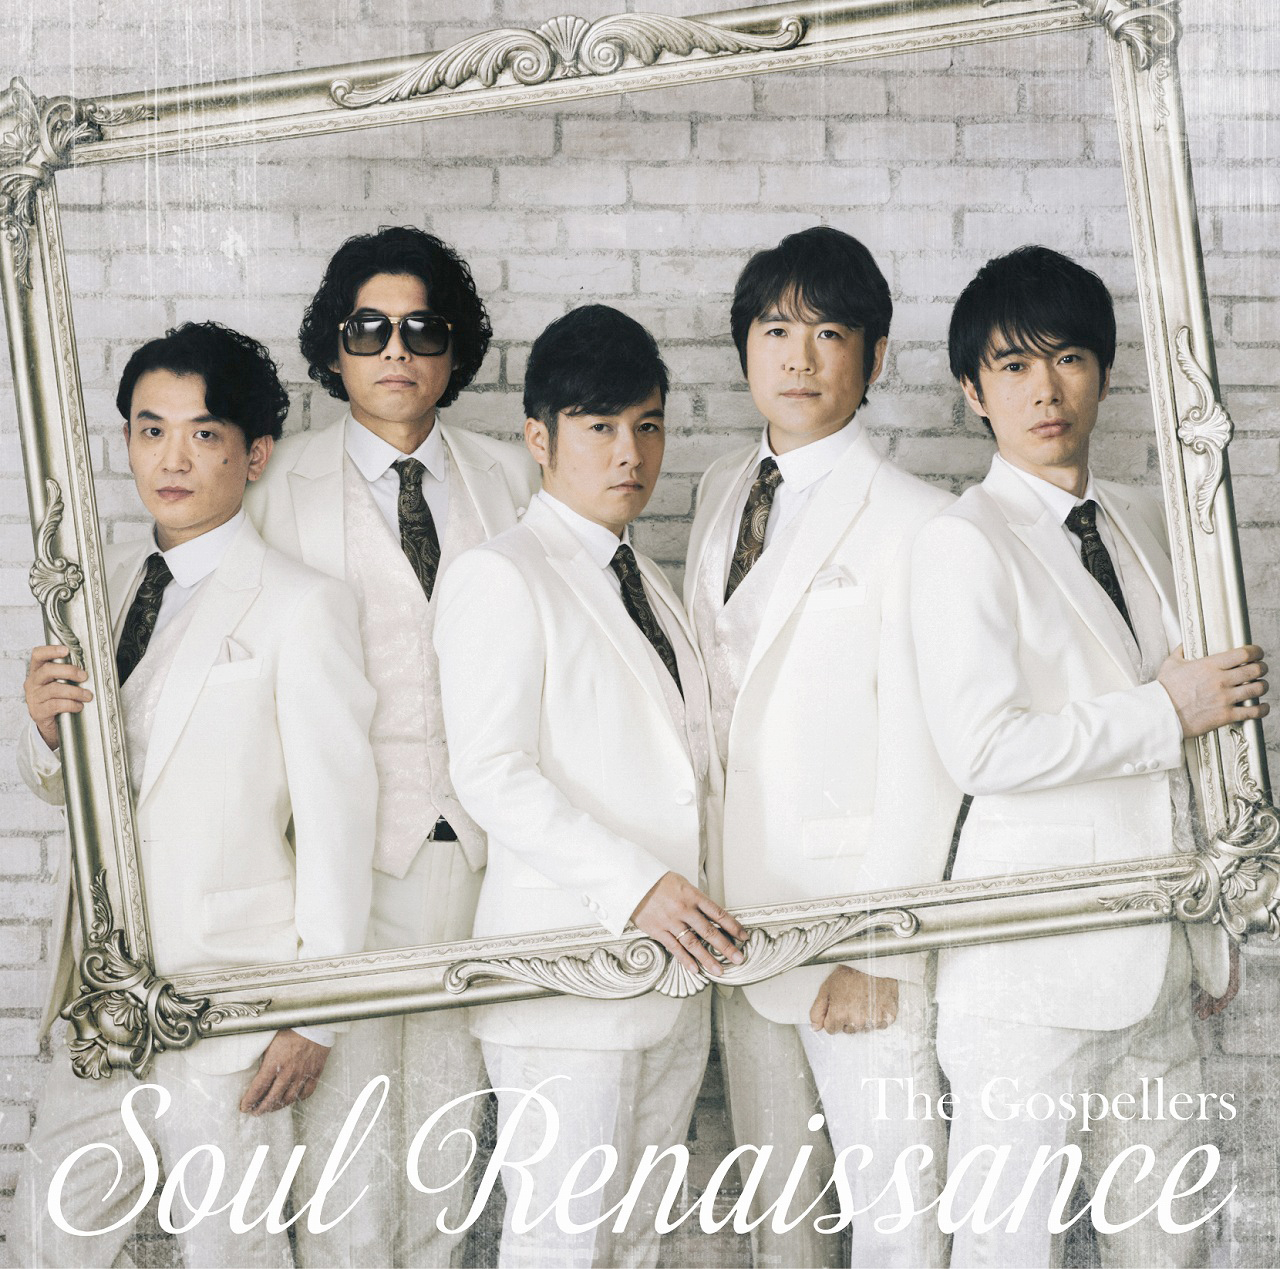 ゴスペラーズ New Album「Soul Renaissance」